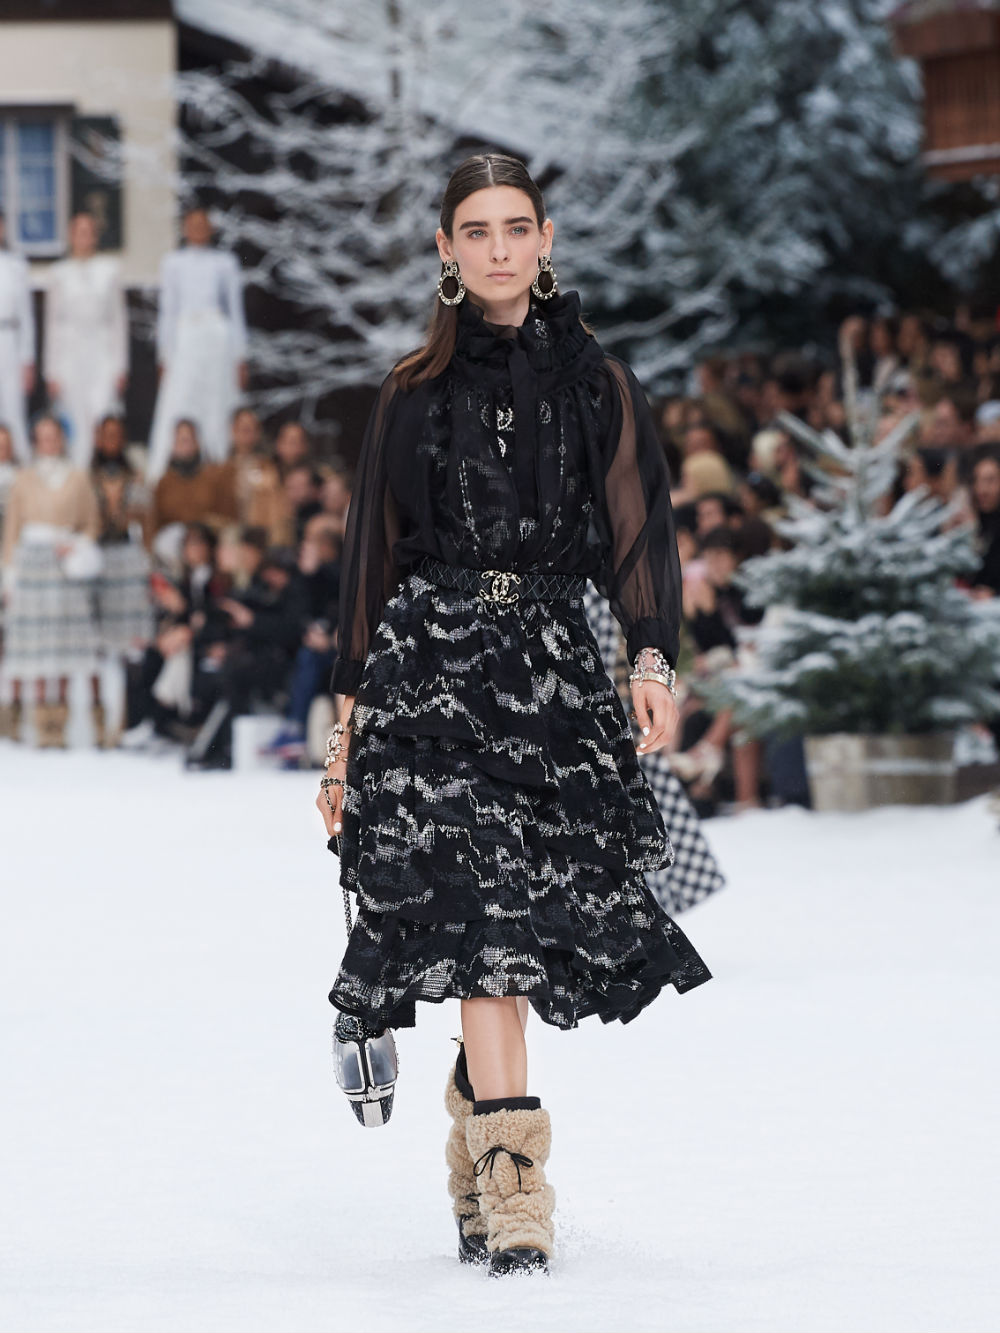 FALL-WINTER 201920 READY-TO-WEAR COLLECTION (11)